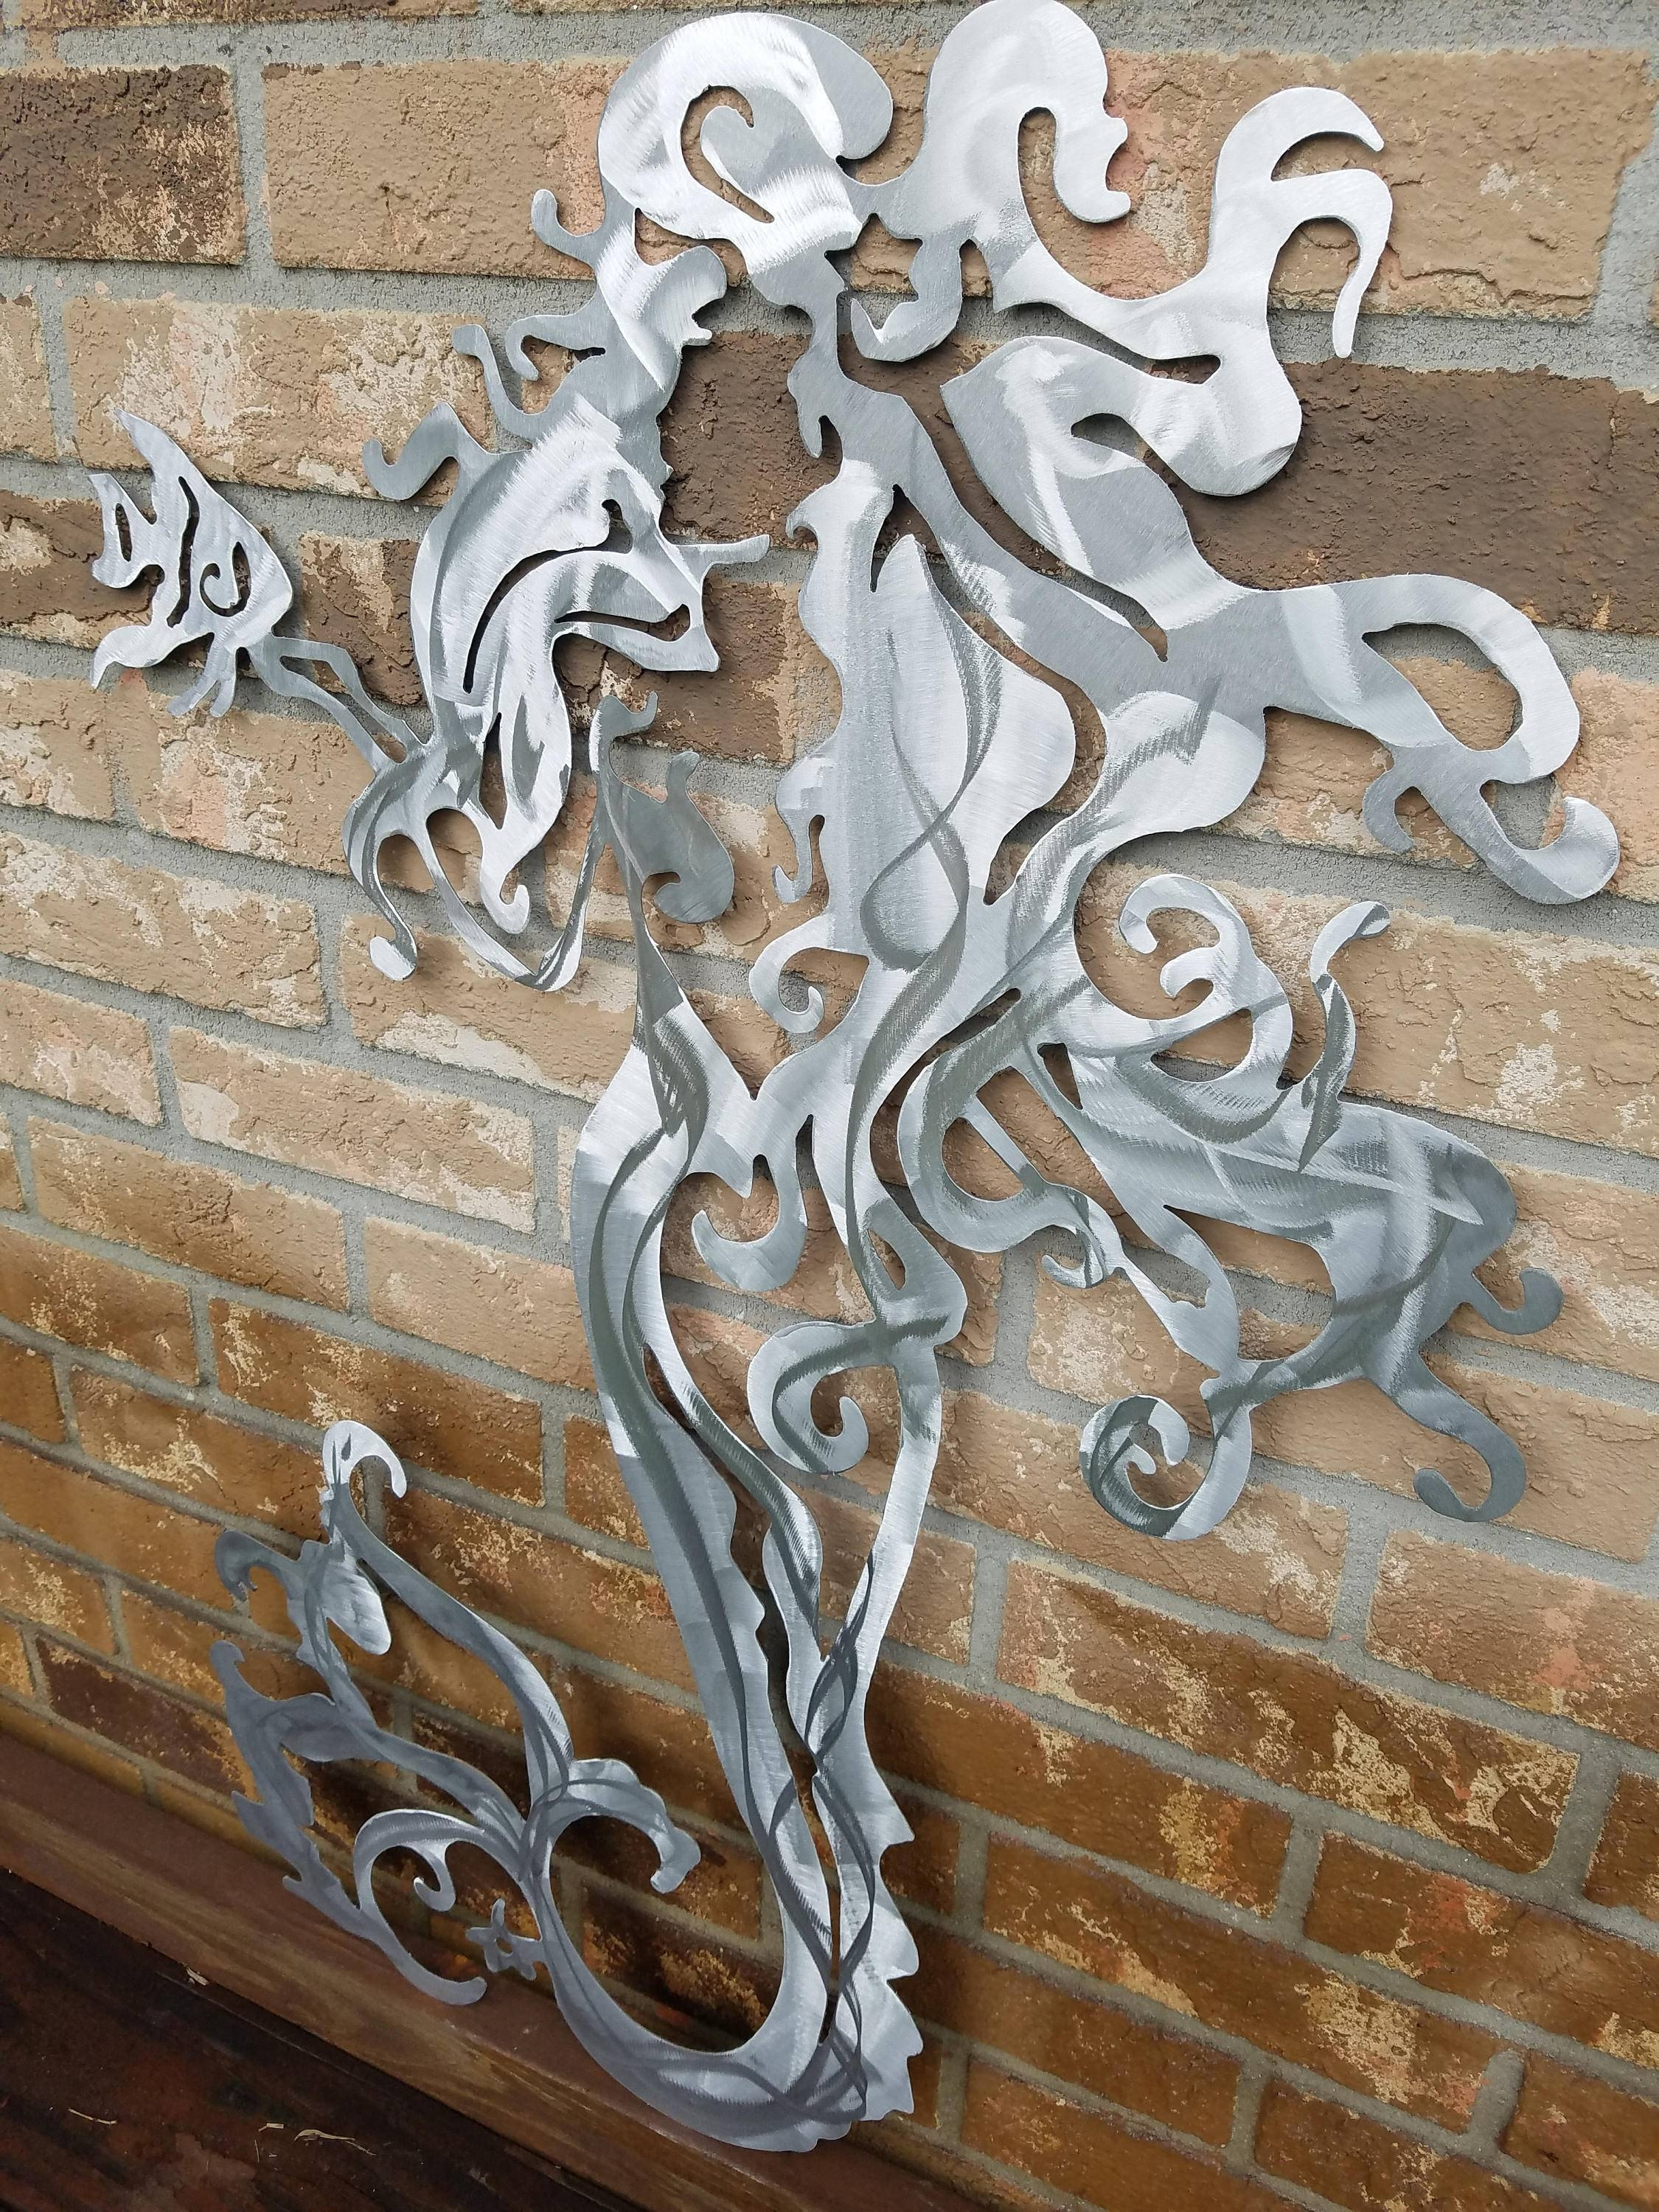 Mermaid Metal Wall Art, Aluminum Mermaid, Metal Mermaid, Fish Pertaining To Current Mermaid Metal Wall Art (View 17 of 20)